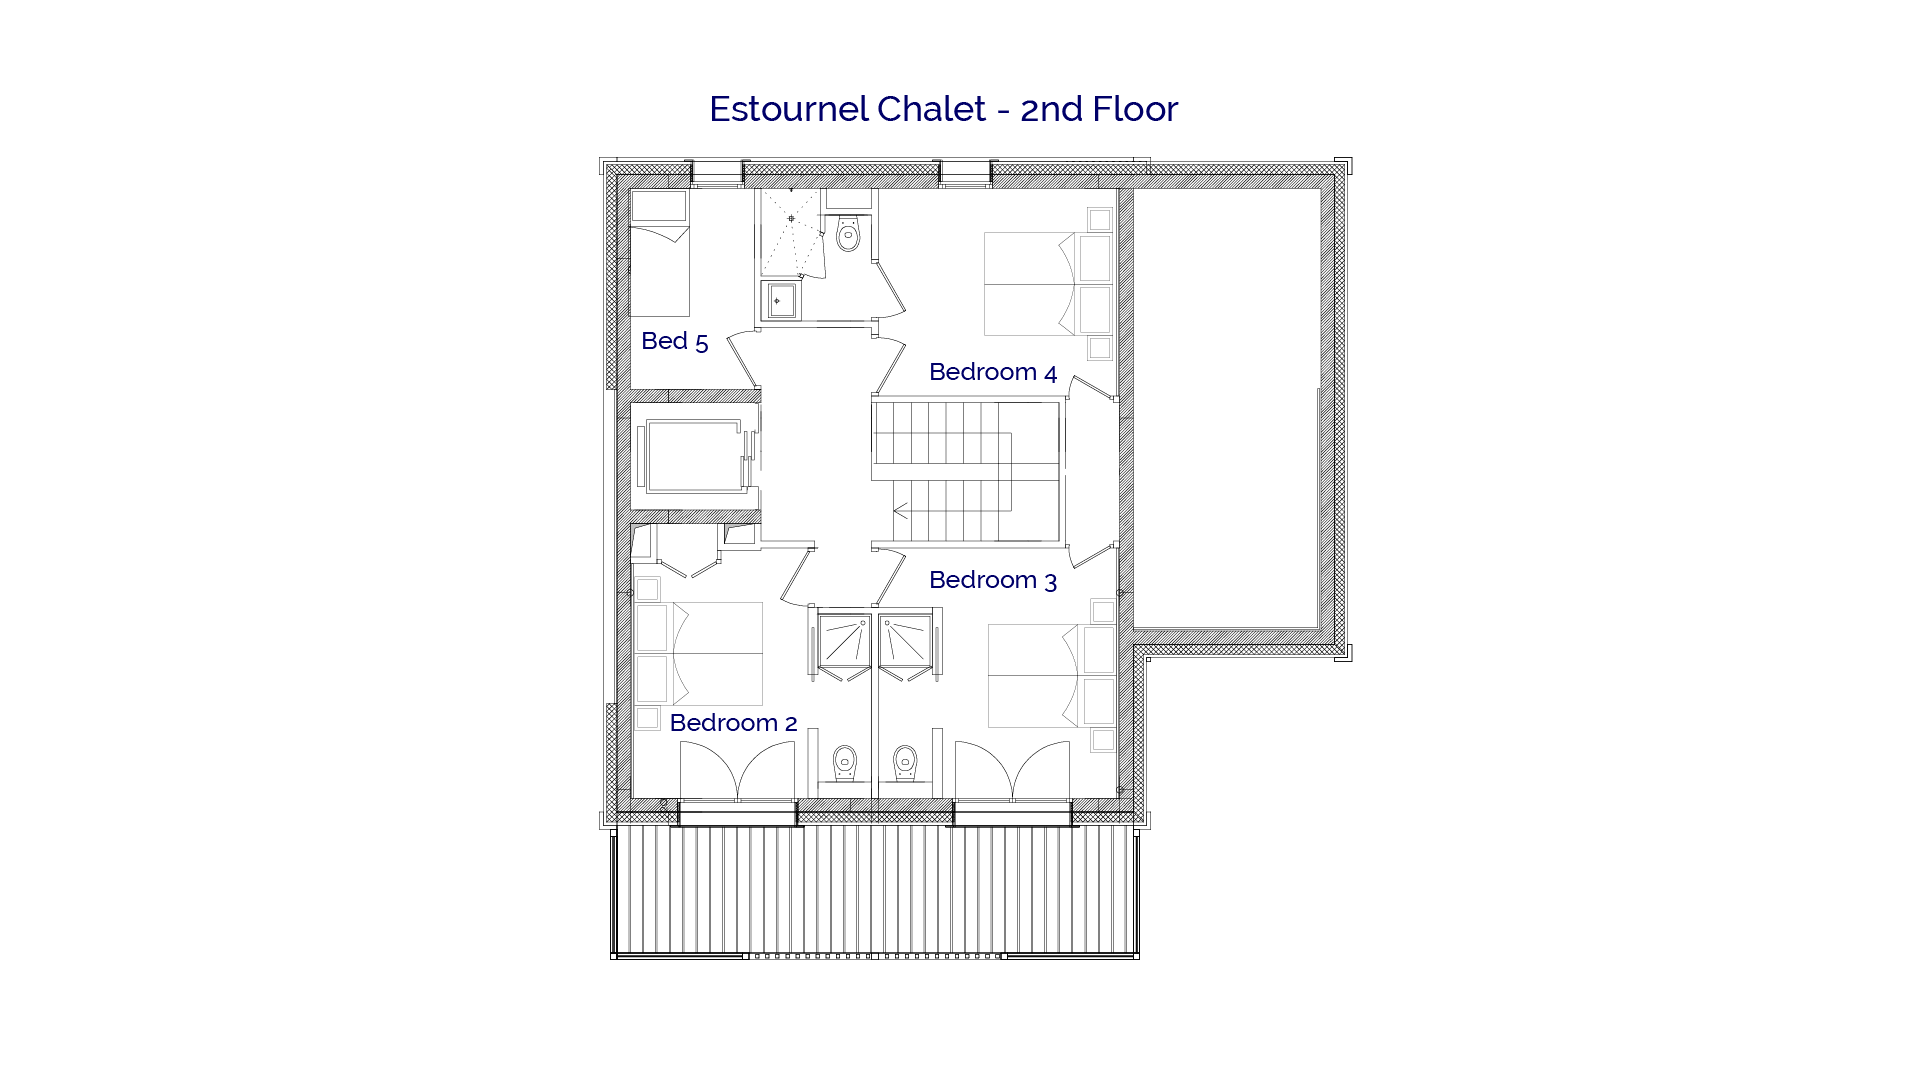 Estournel luxury self catered chalet in Sainte Foy, 2nd floor plans